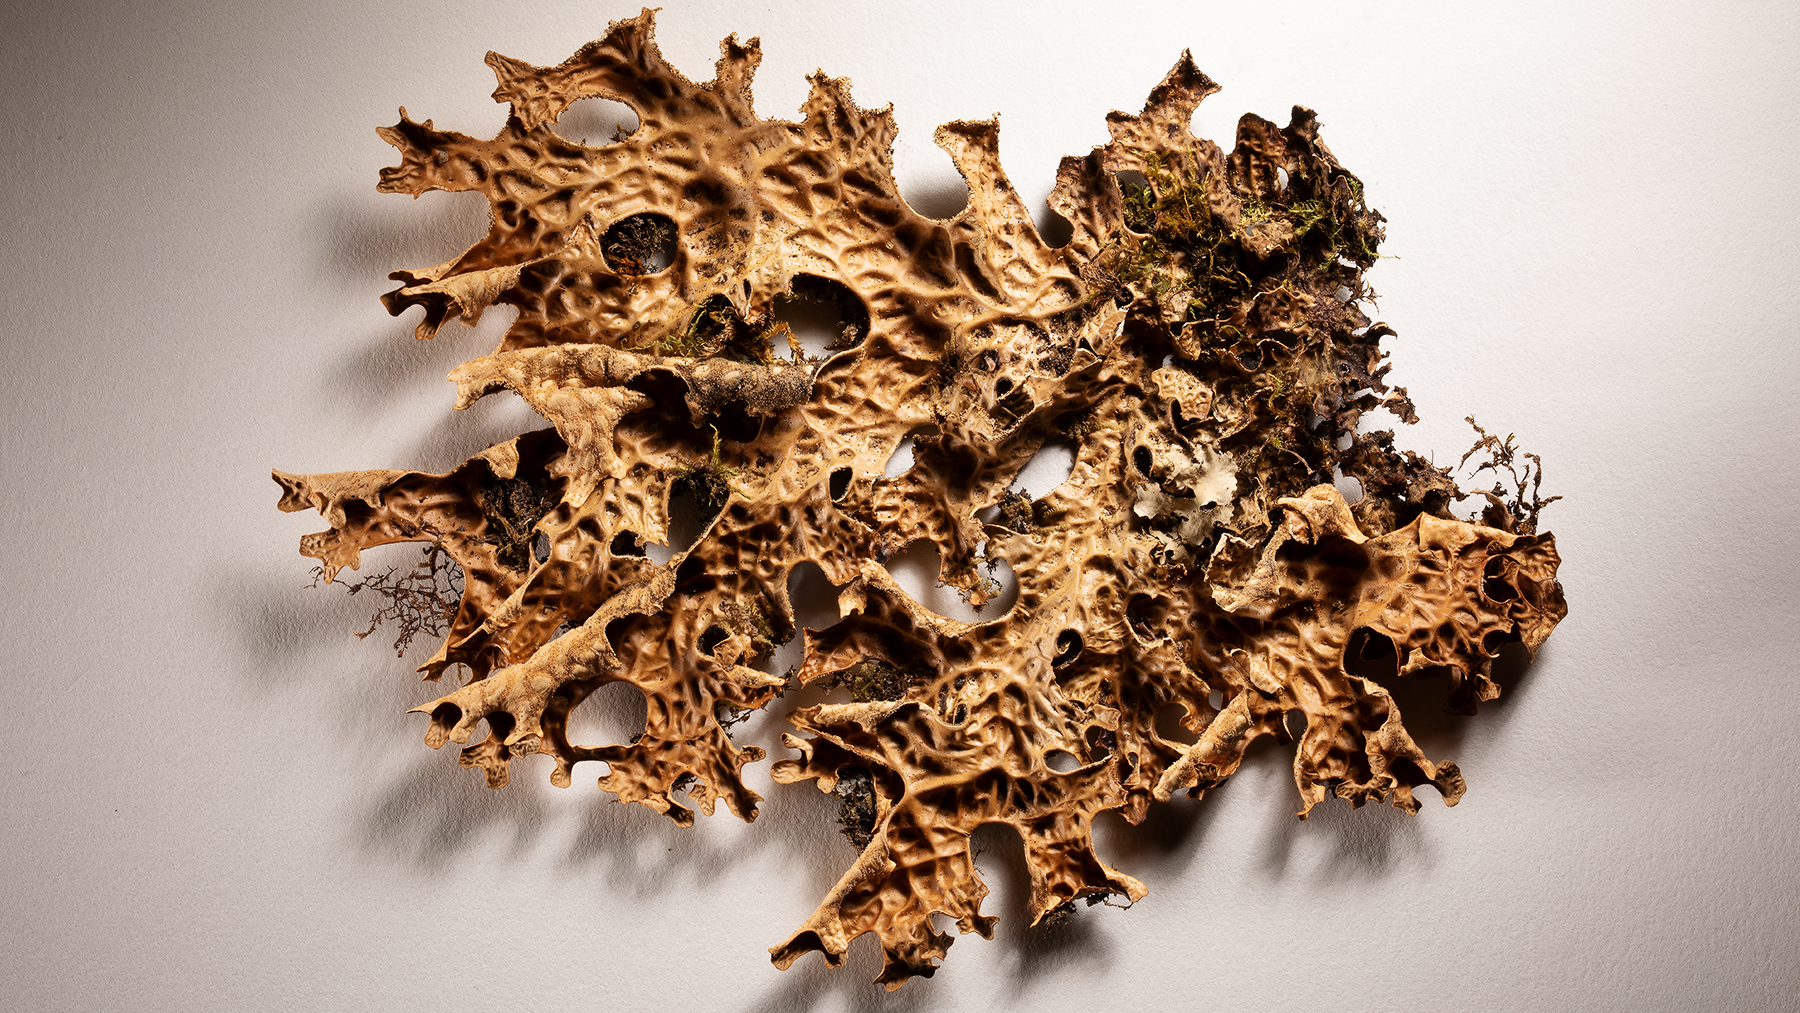 Researchers found pyrophilous fungal DNA inside this epiphytic lichen of the genus Lobaria. Photo by L. Brian Stauffer